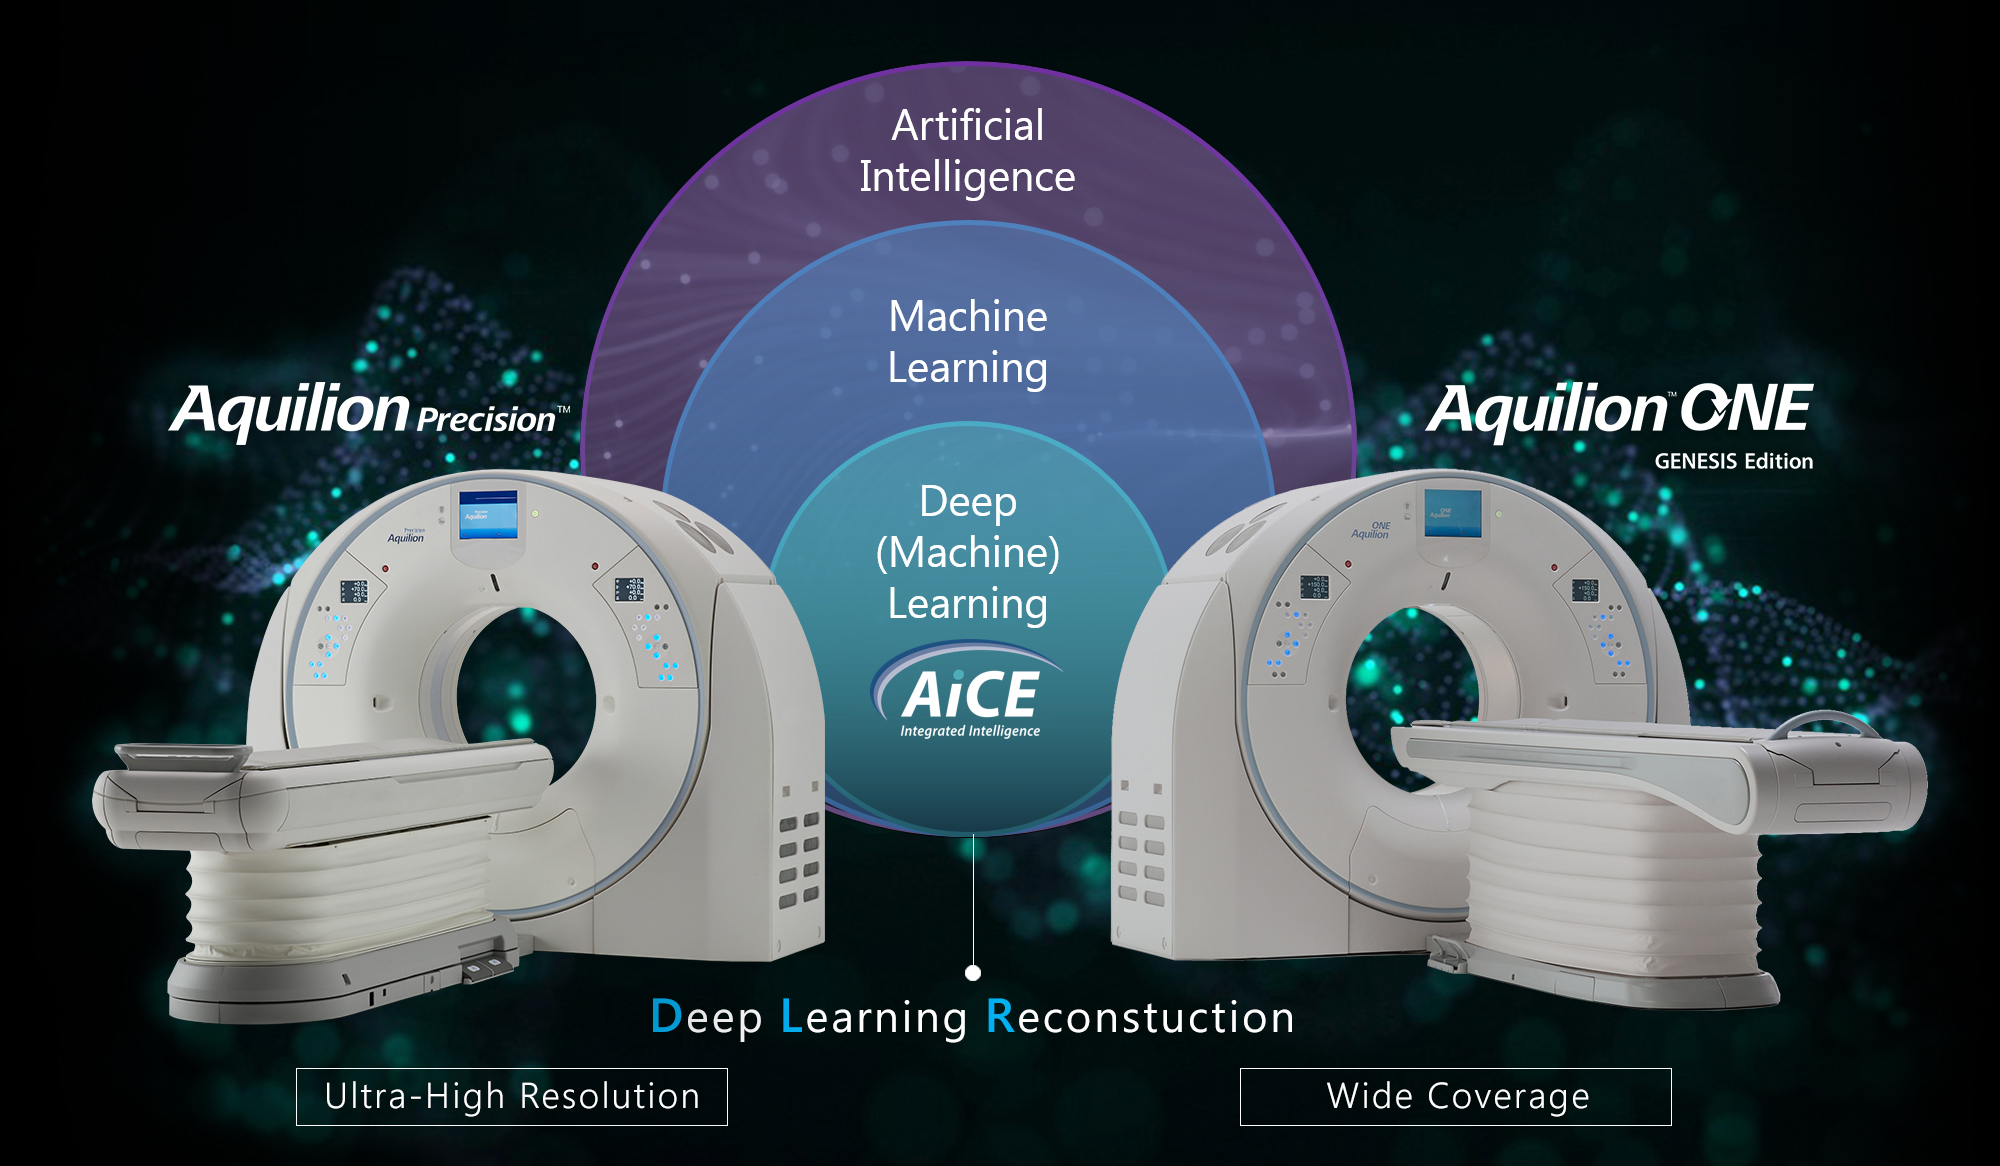 AiCE Deep Learning Reconstruction (AiCE DLR)